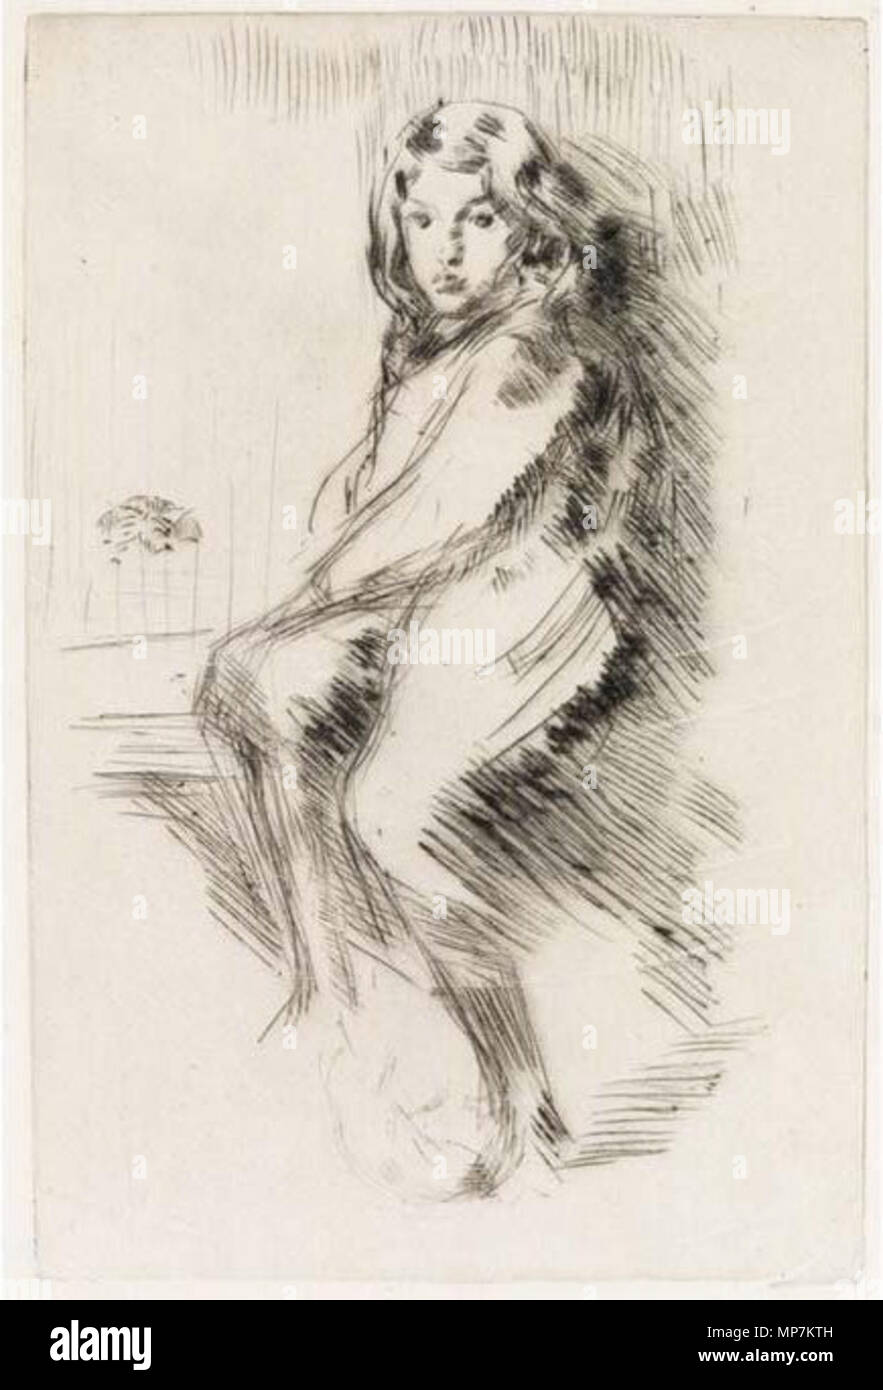 . James Whistler - The Boy (Charlie Hanson), 1875-76. Drypoint, .jpg . between 1875 and 1876. This file is lacking author information. 694 James Whistler - The Boy (Charlie Hanson), 1875-76. Drypoint - Stock Image